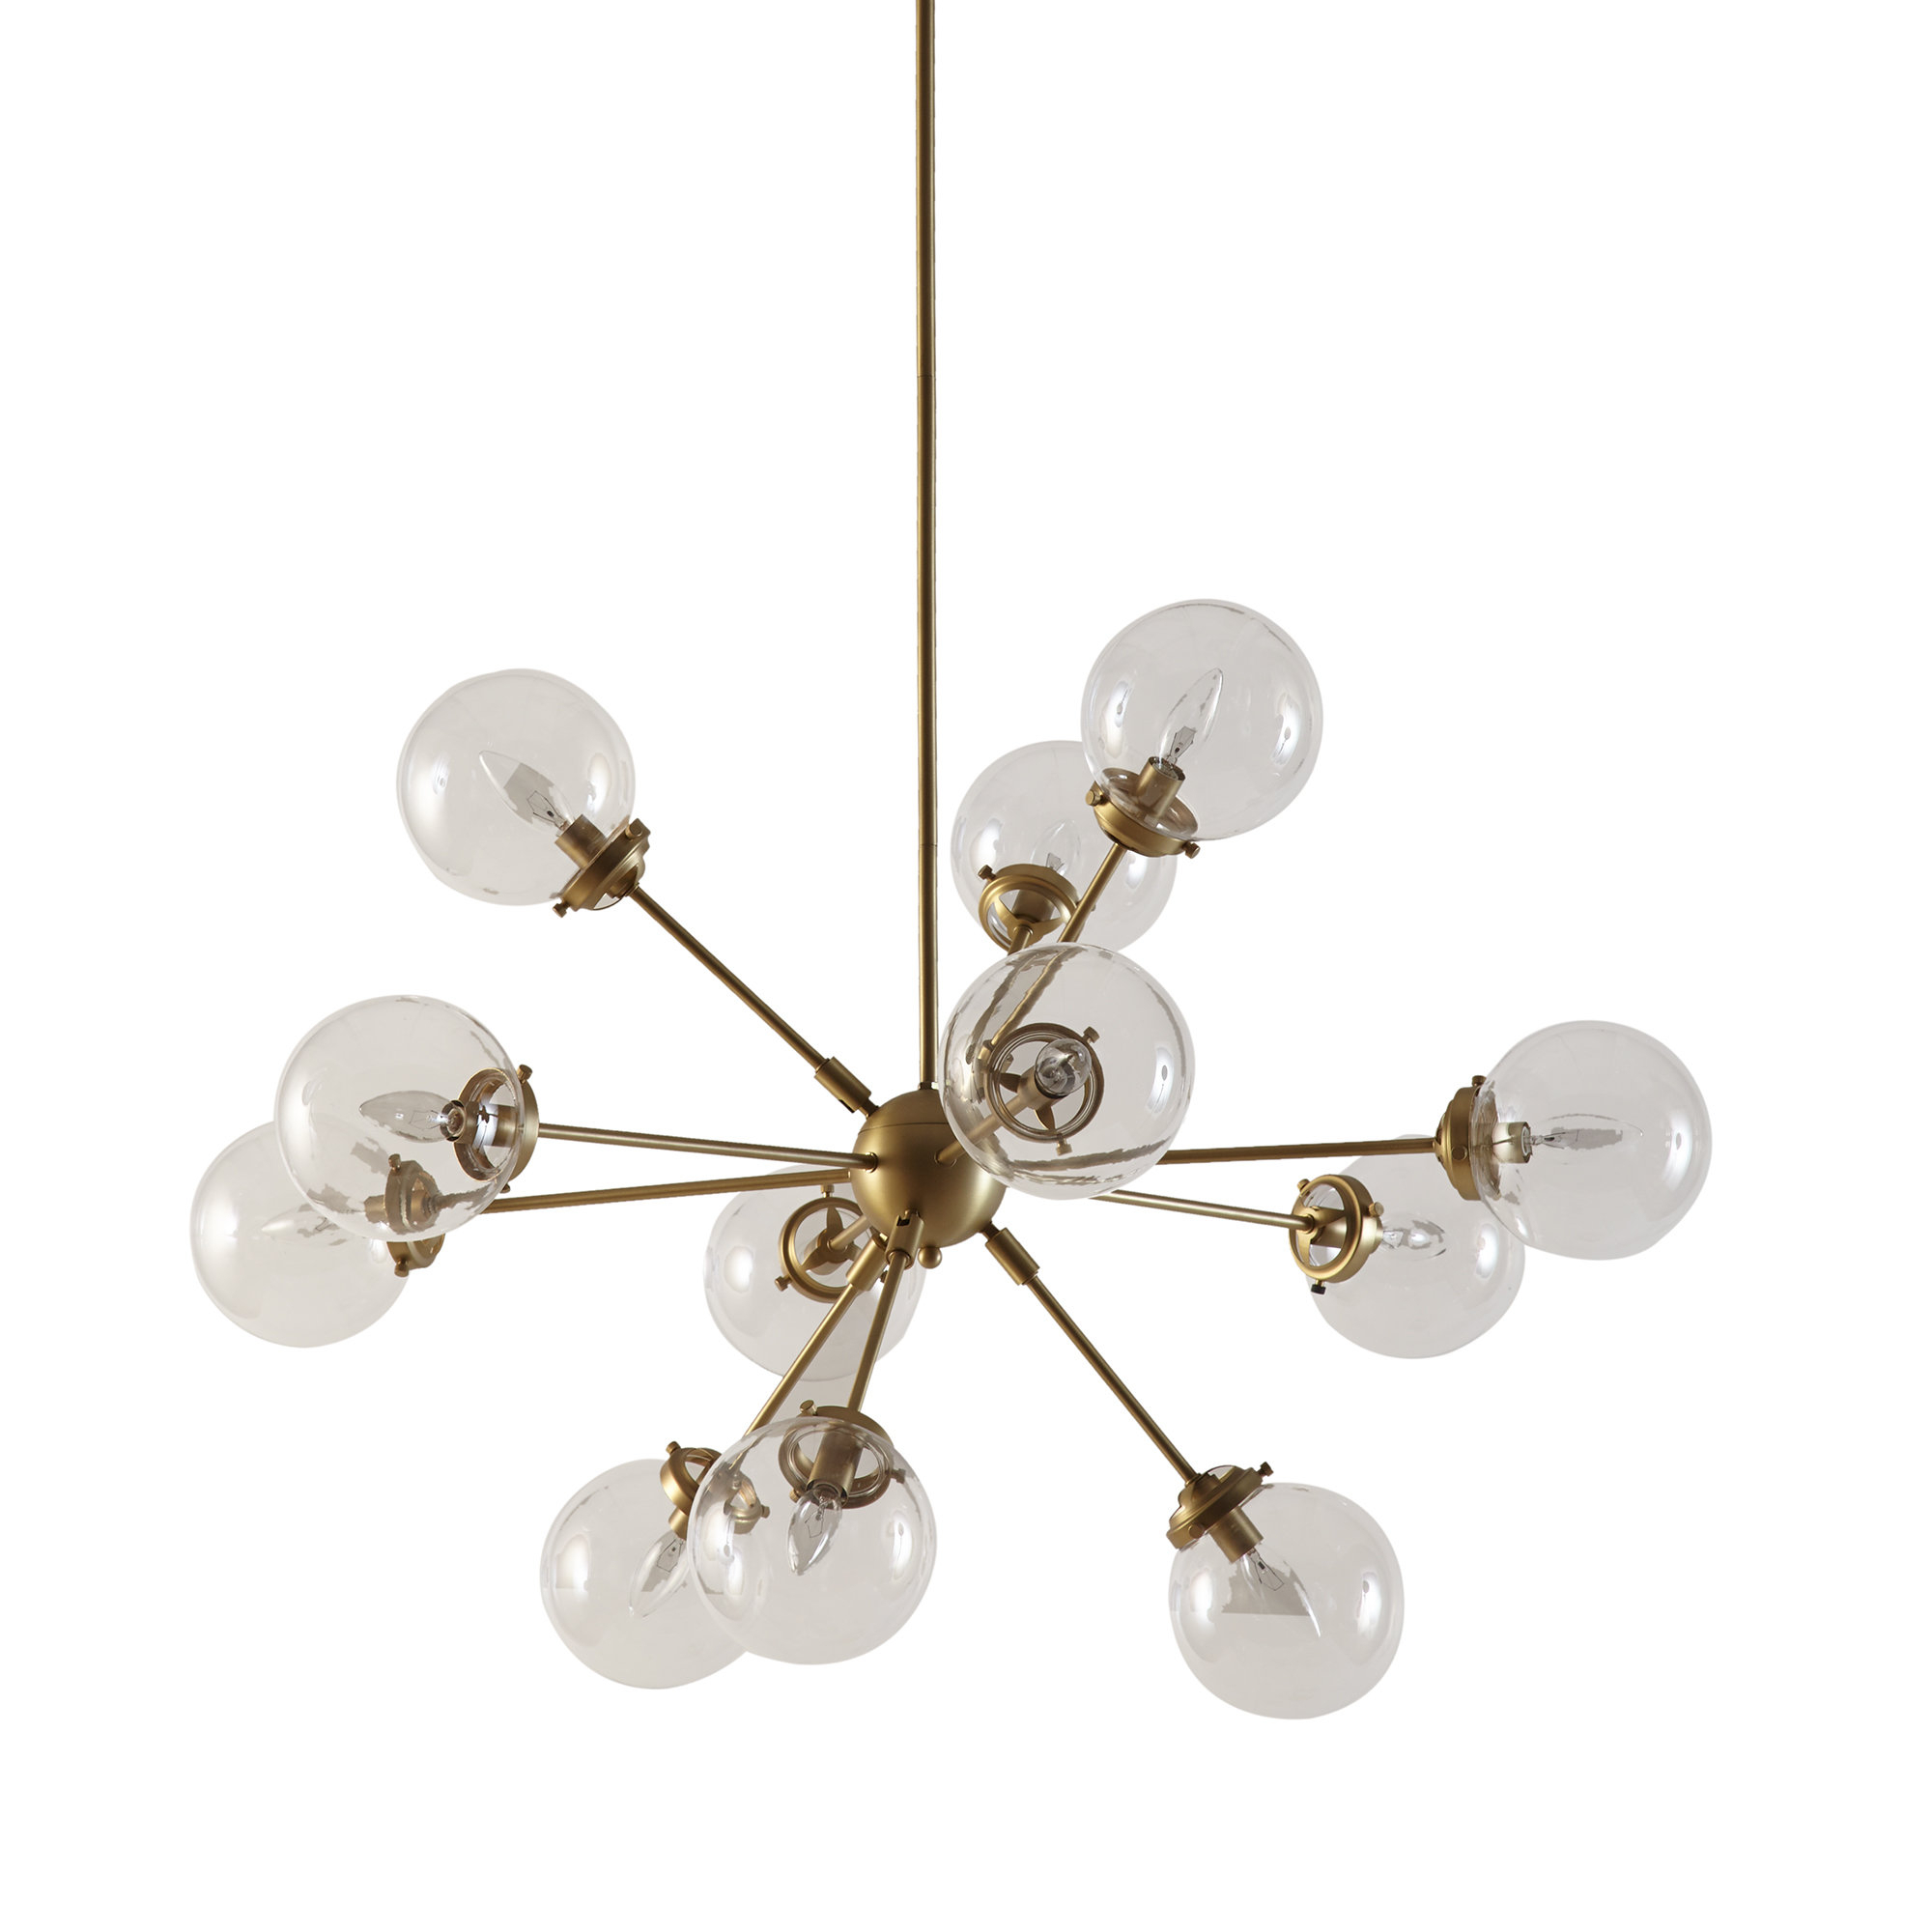 Modern & Contemporary Sputnik Pendant | Allmodern Inside Vroman 12 Light Sputnik Chandeliers (View 16 of 30)